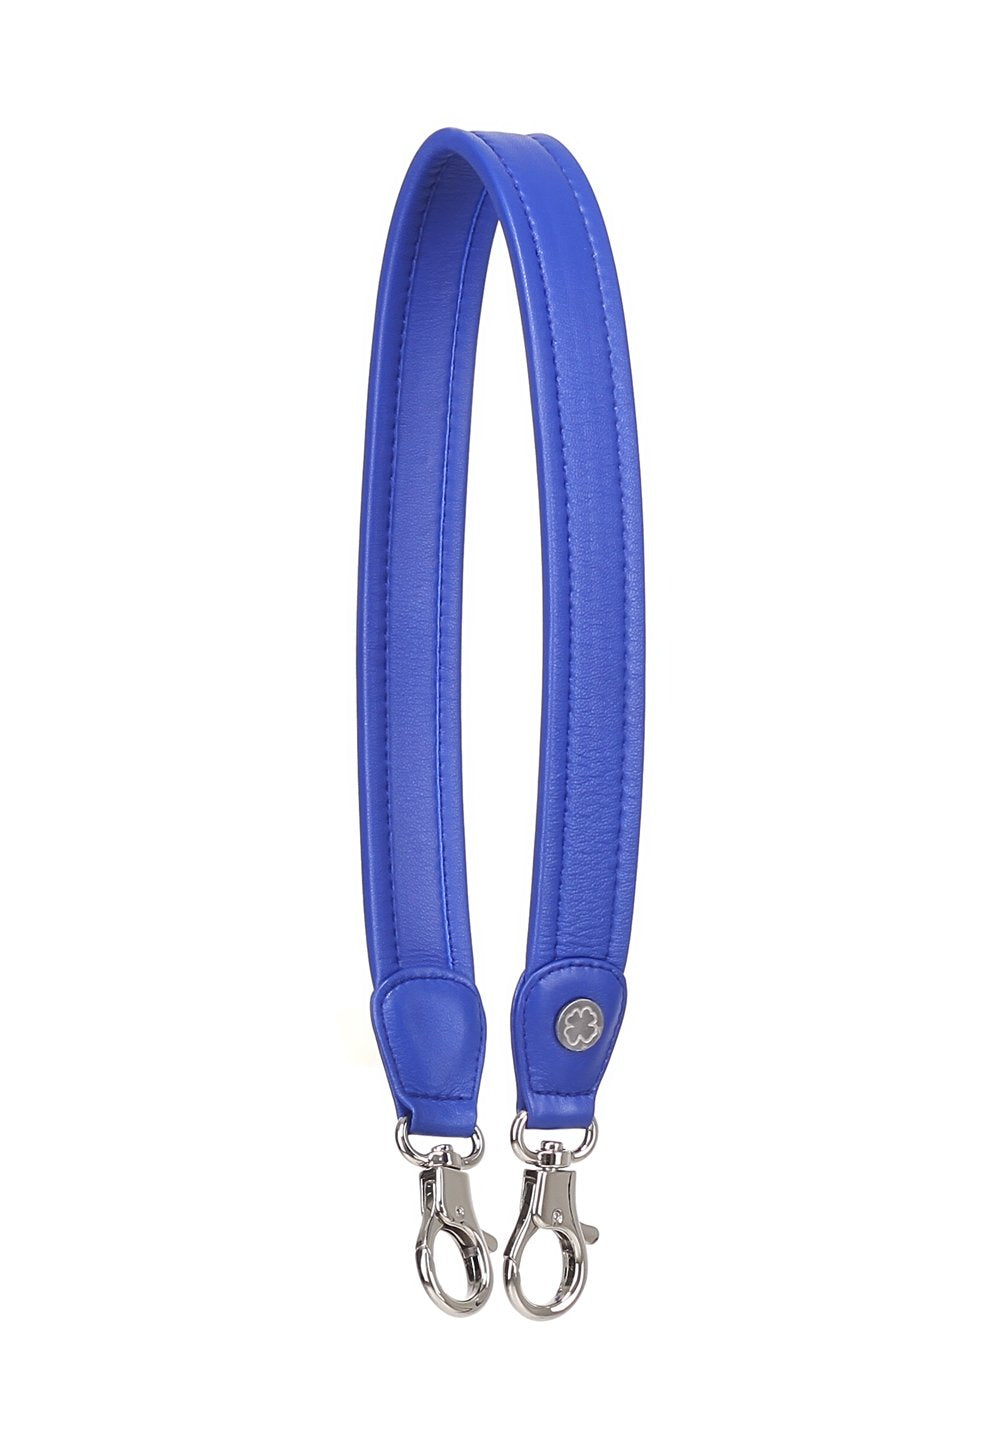 Lambskin Leather Strap (Royal Blue)